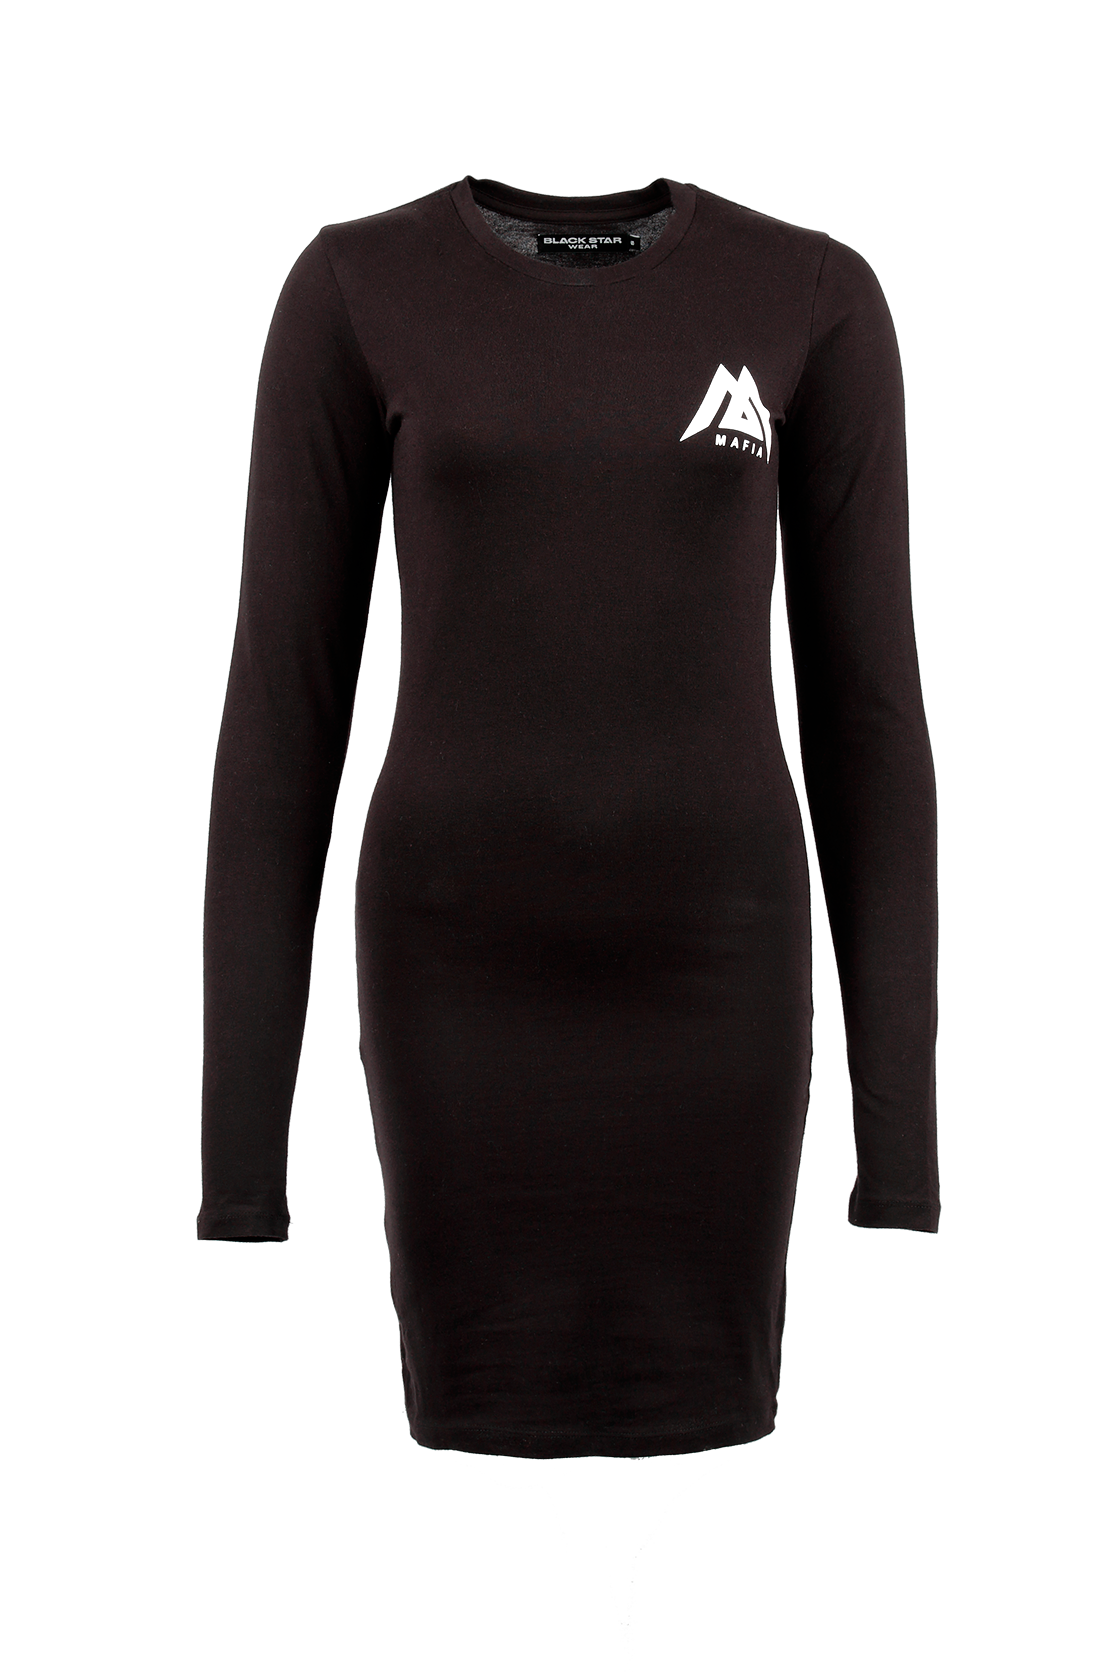 Womens dress Black Star MafiaWomens dress Black Star Mafia by Black Star Wear. Mostly cotton, o-neck, long sleeves, knee length, slim fit. Small BSM logo on the chest and Black Star Mafia lettering on the back. Avaliable in black.<br><br>size: S<br>color: Black<br>gender: female